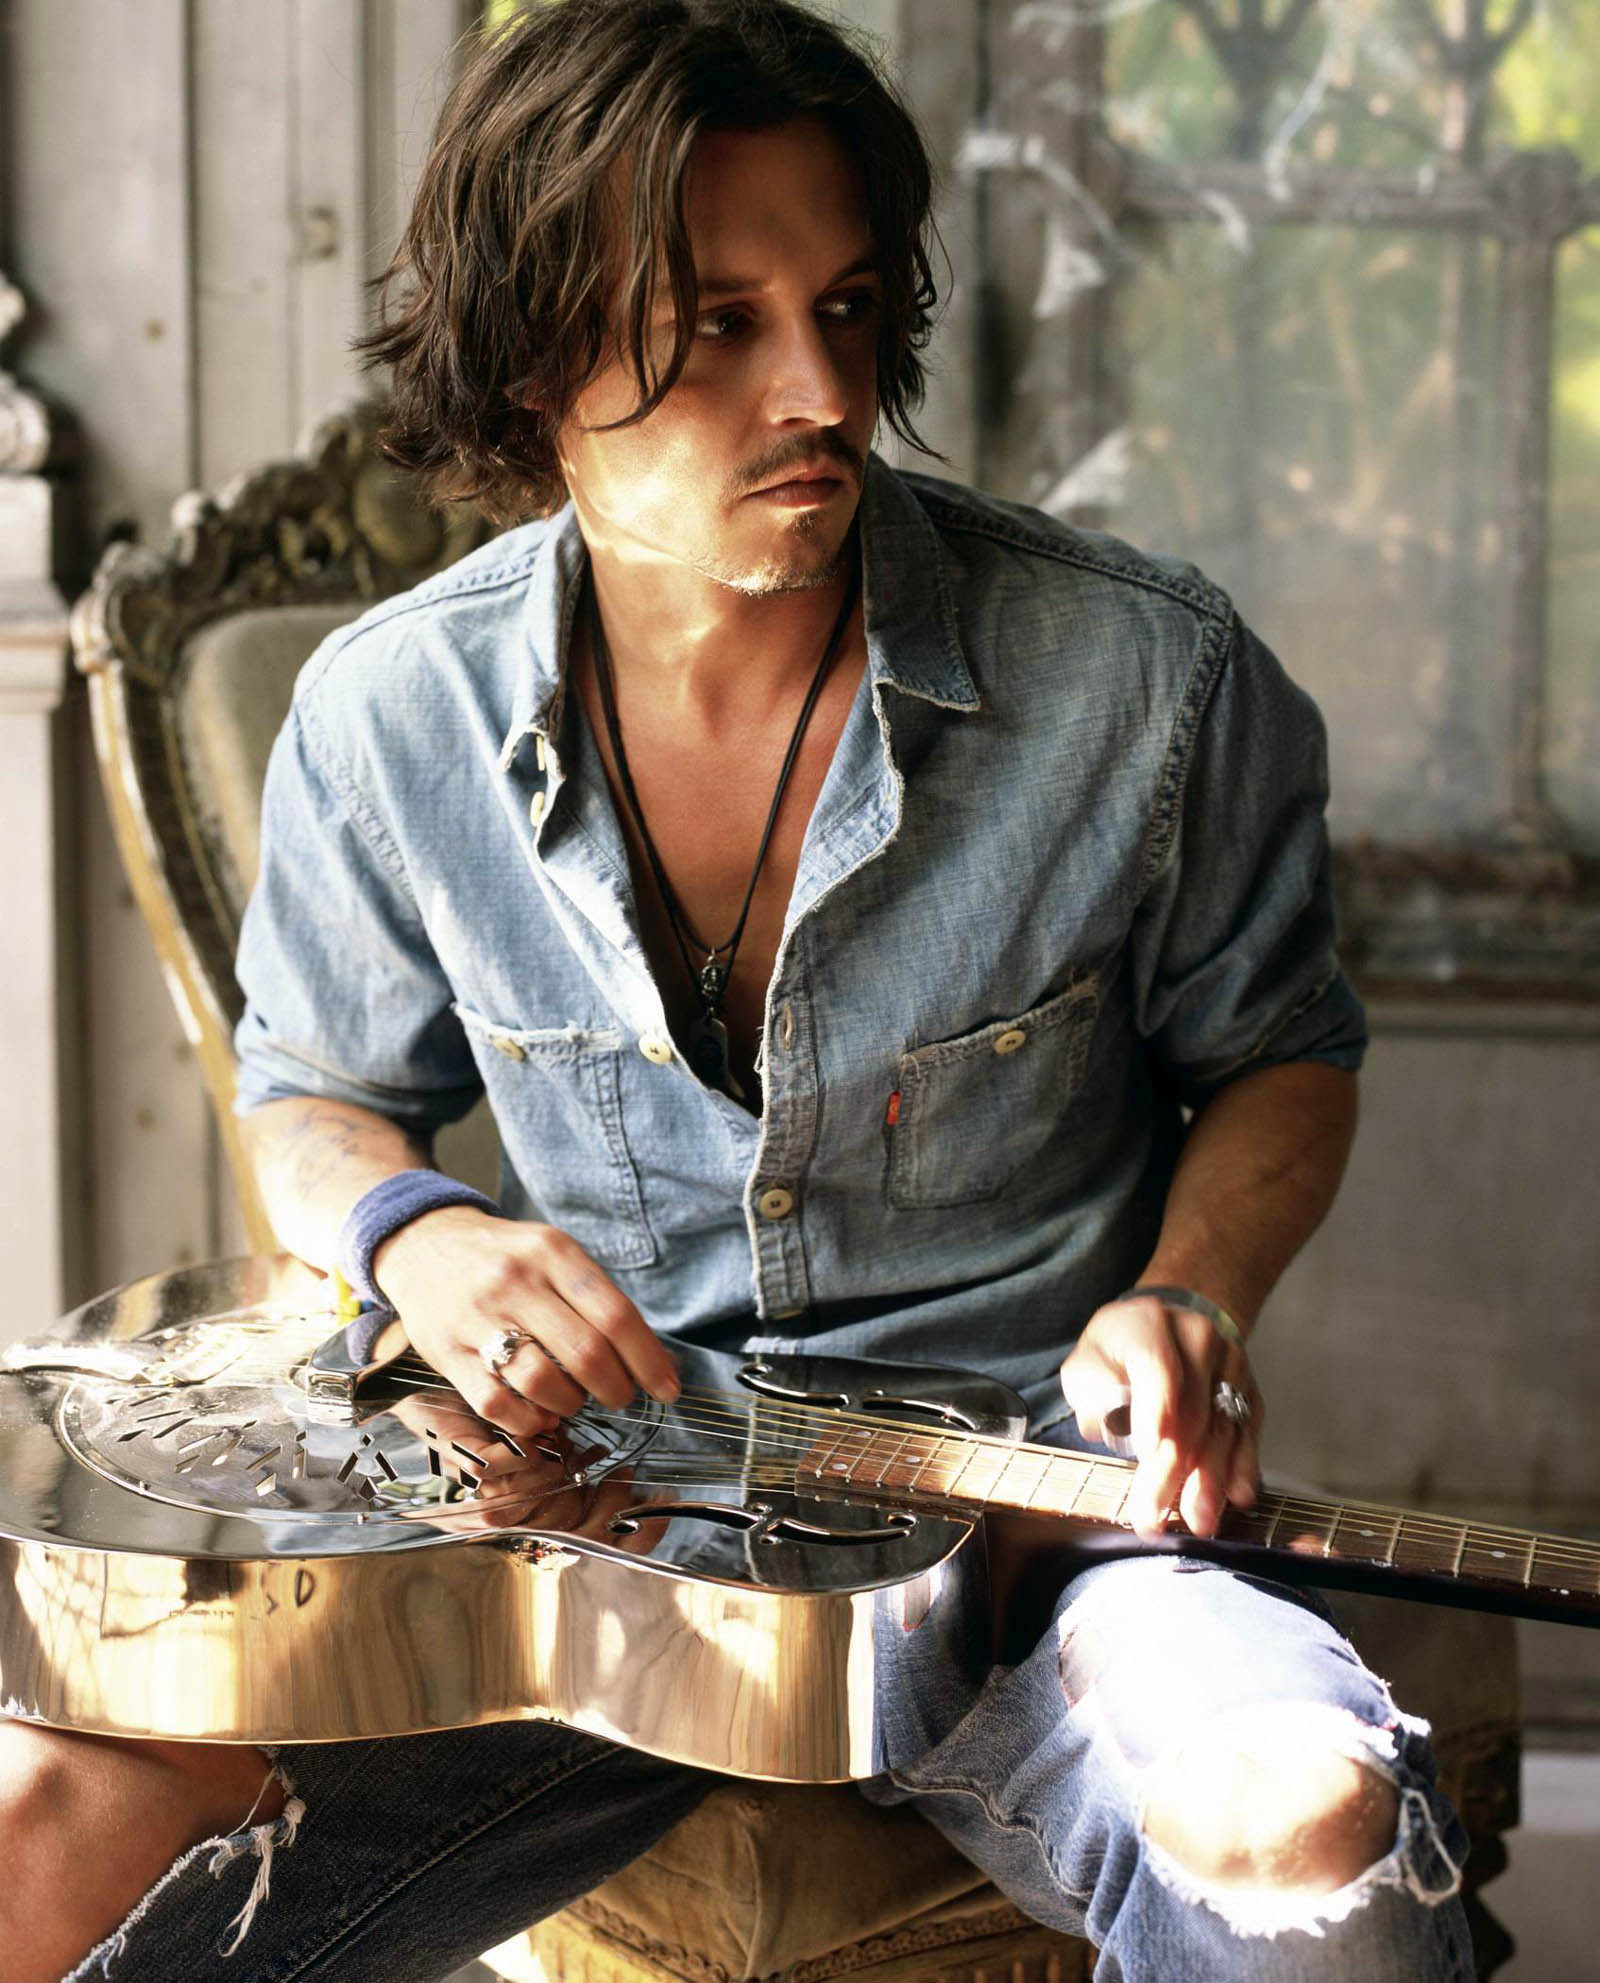 johnny depp with guitar johnny depp photo 35485146 fanpop. Black Bedroom Furniture Sets. Home Design Ideas